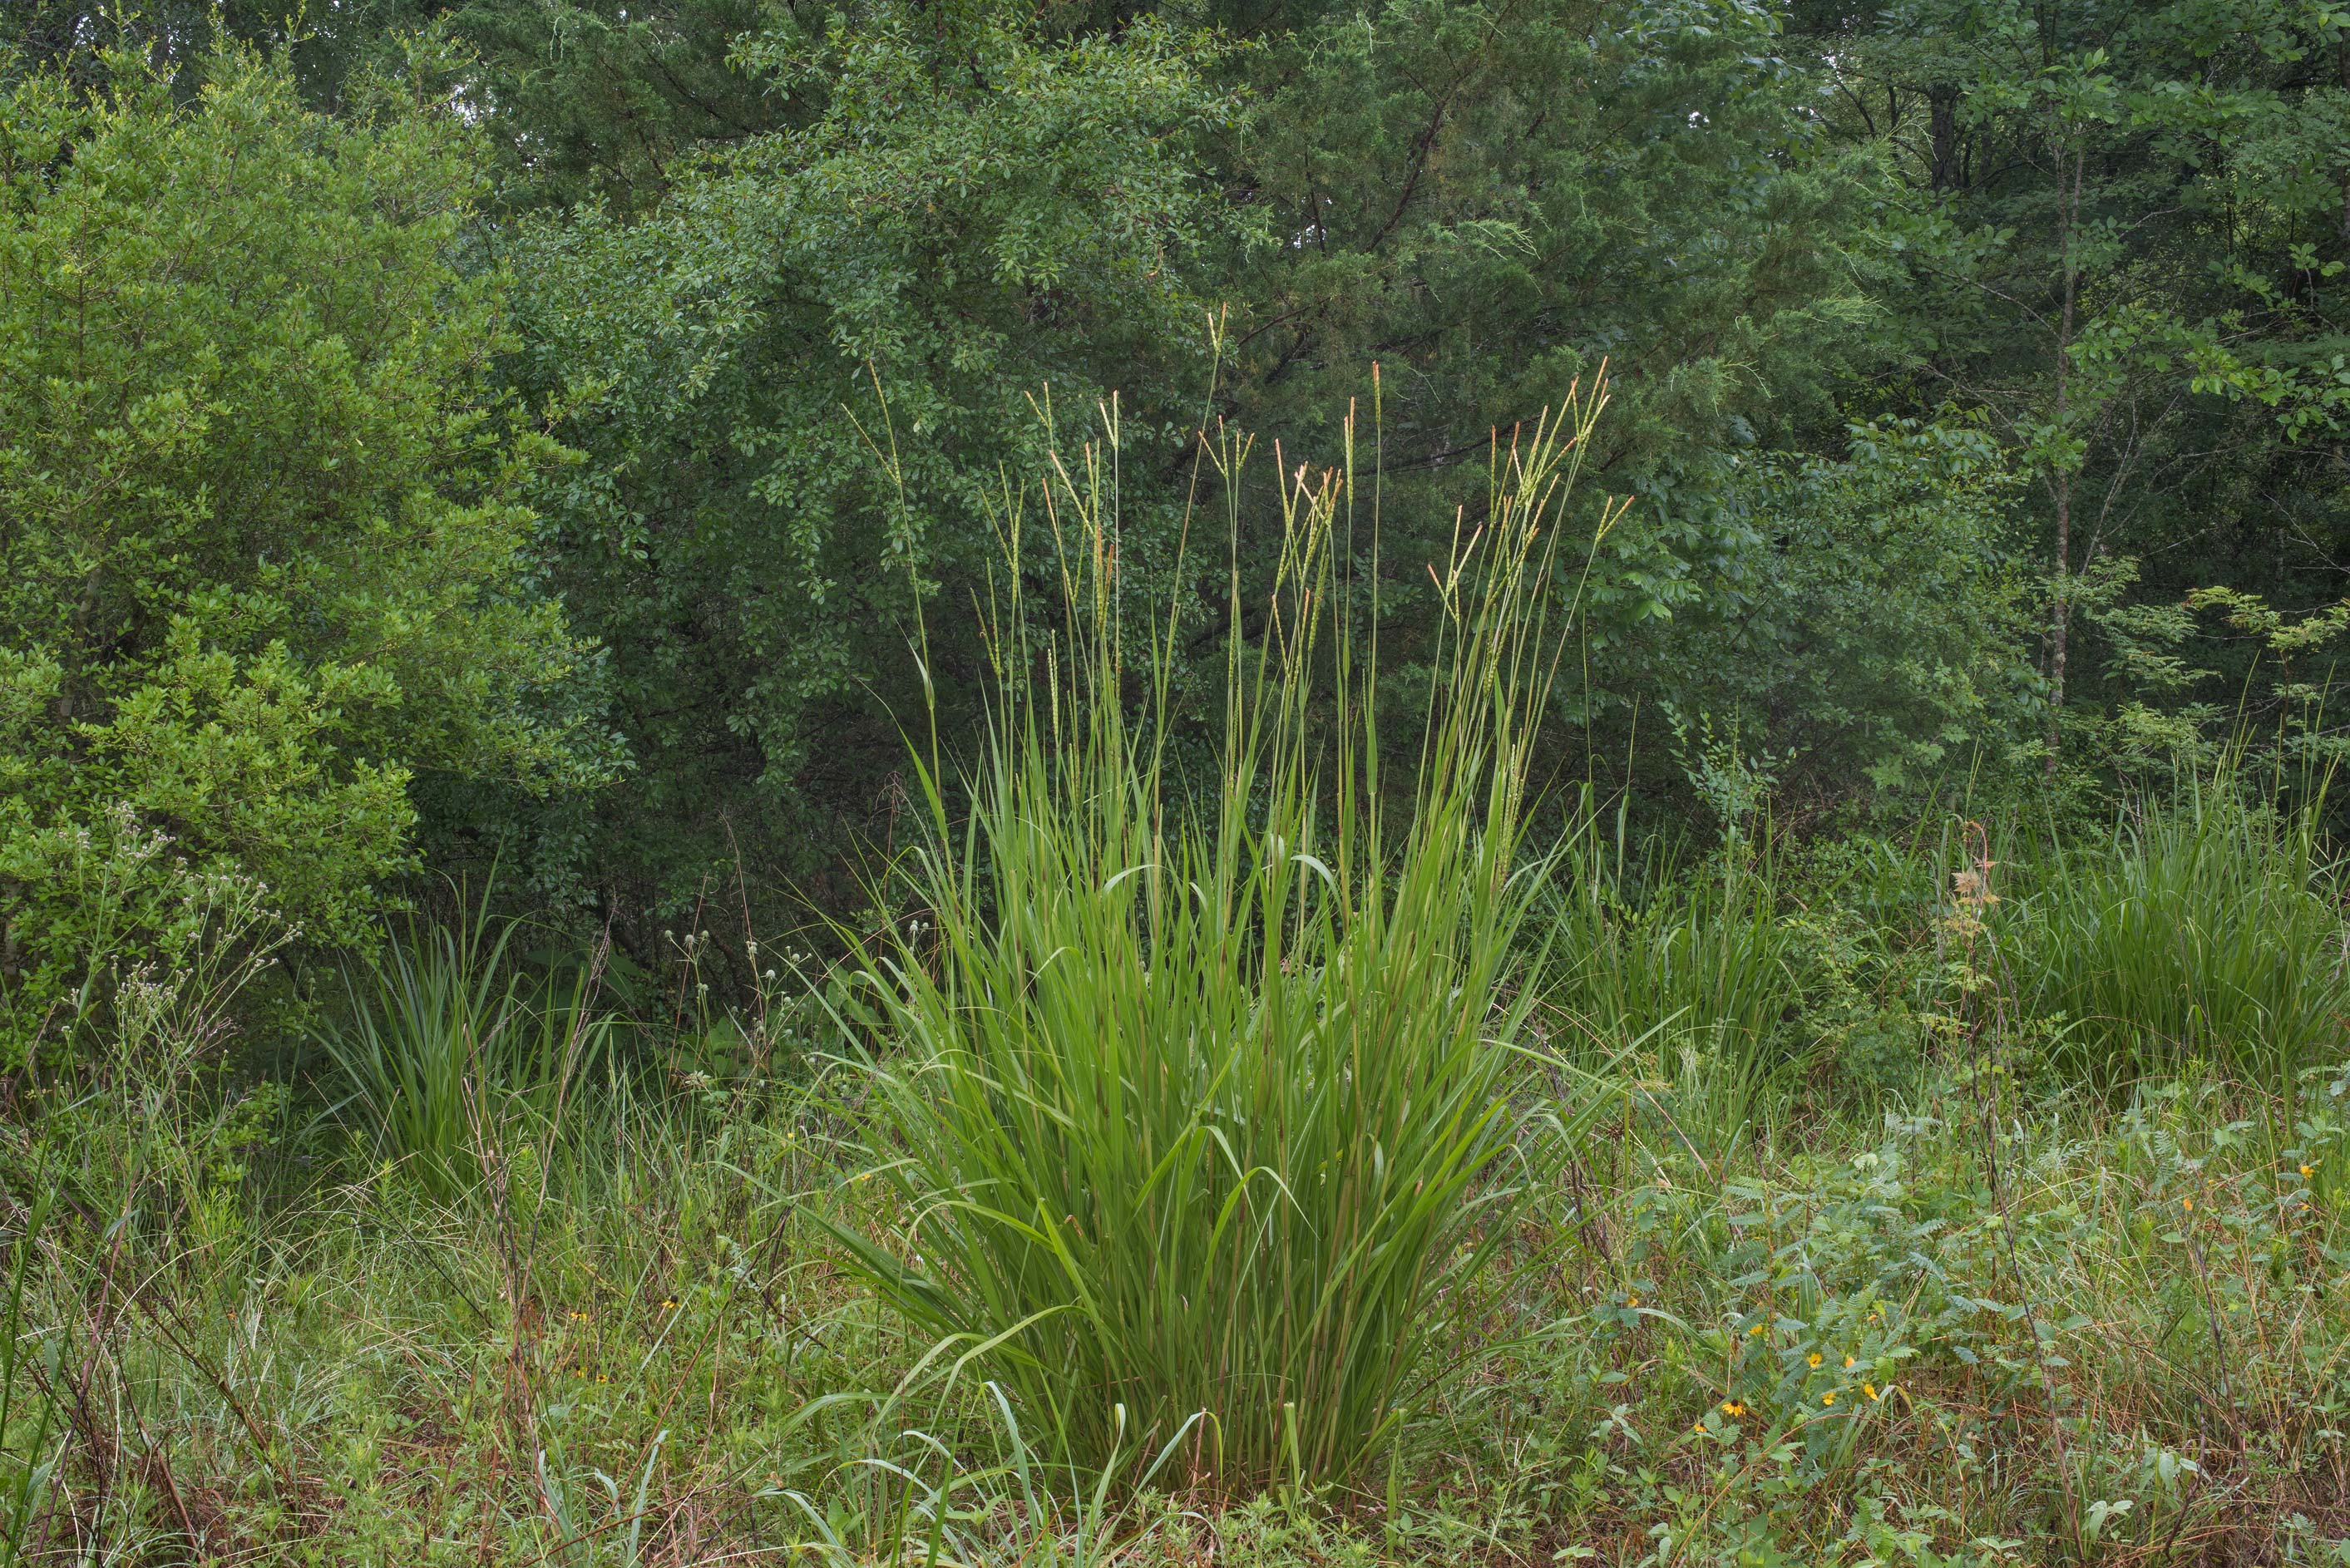 Eastern gamagrass (Fakahatchee Grass, Tripsacum...Creek Park. College Station, Texas